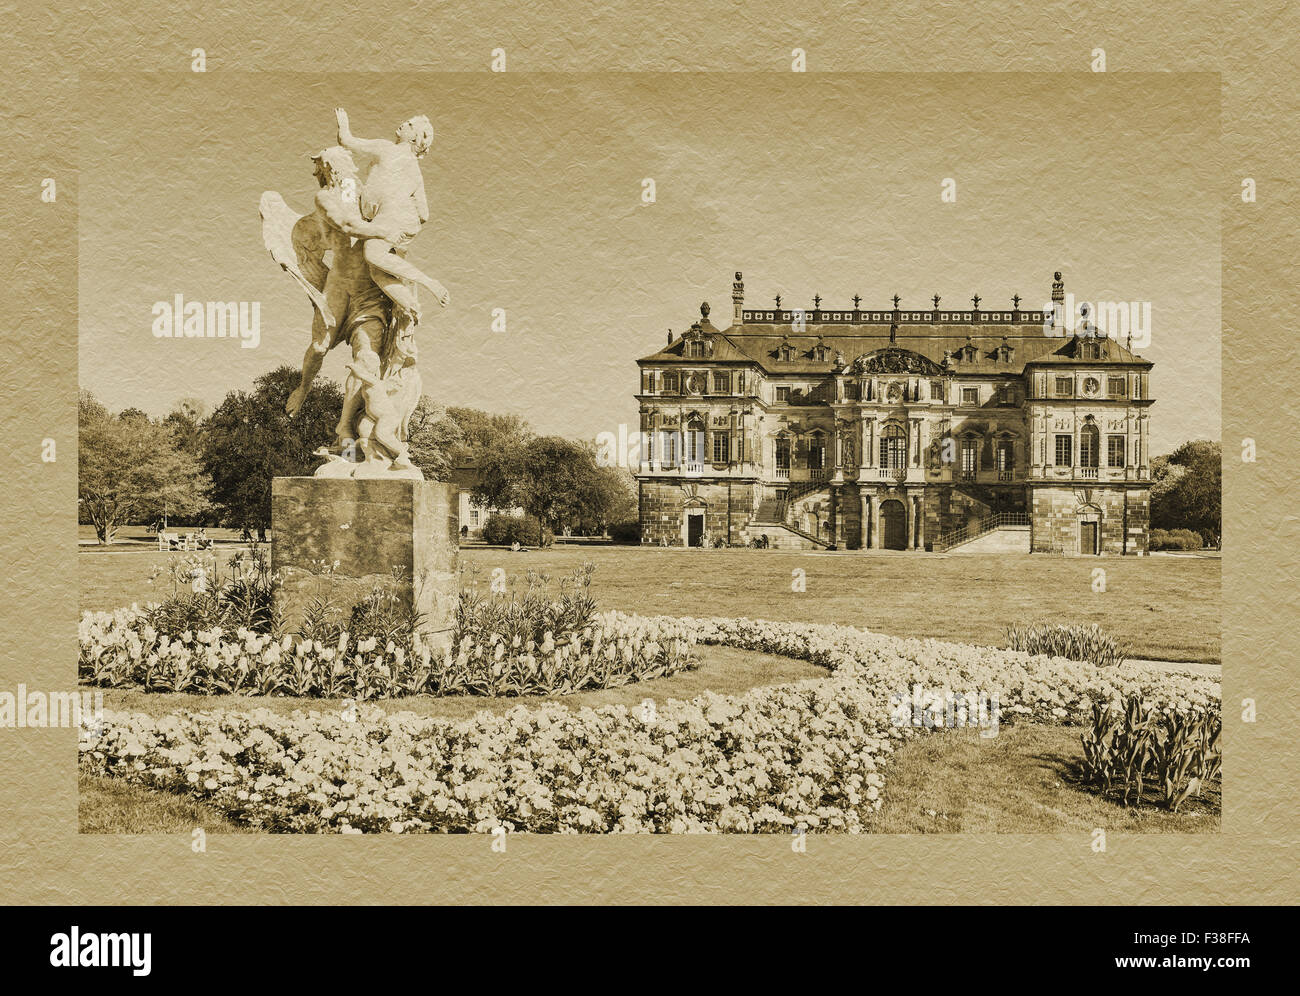 Palace in the grosse garten park and the marble group The Time takes the beauty by Pietro Balestra, Dresden, Saxony, - Stock Image